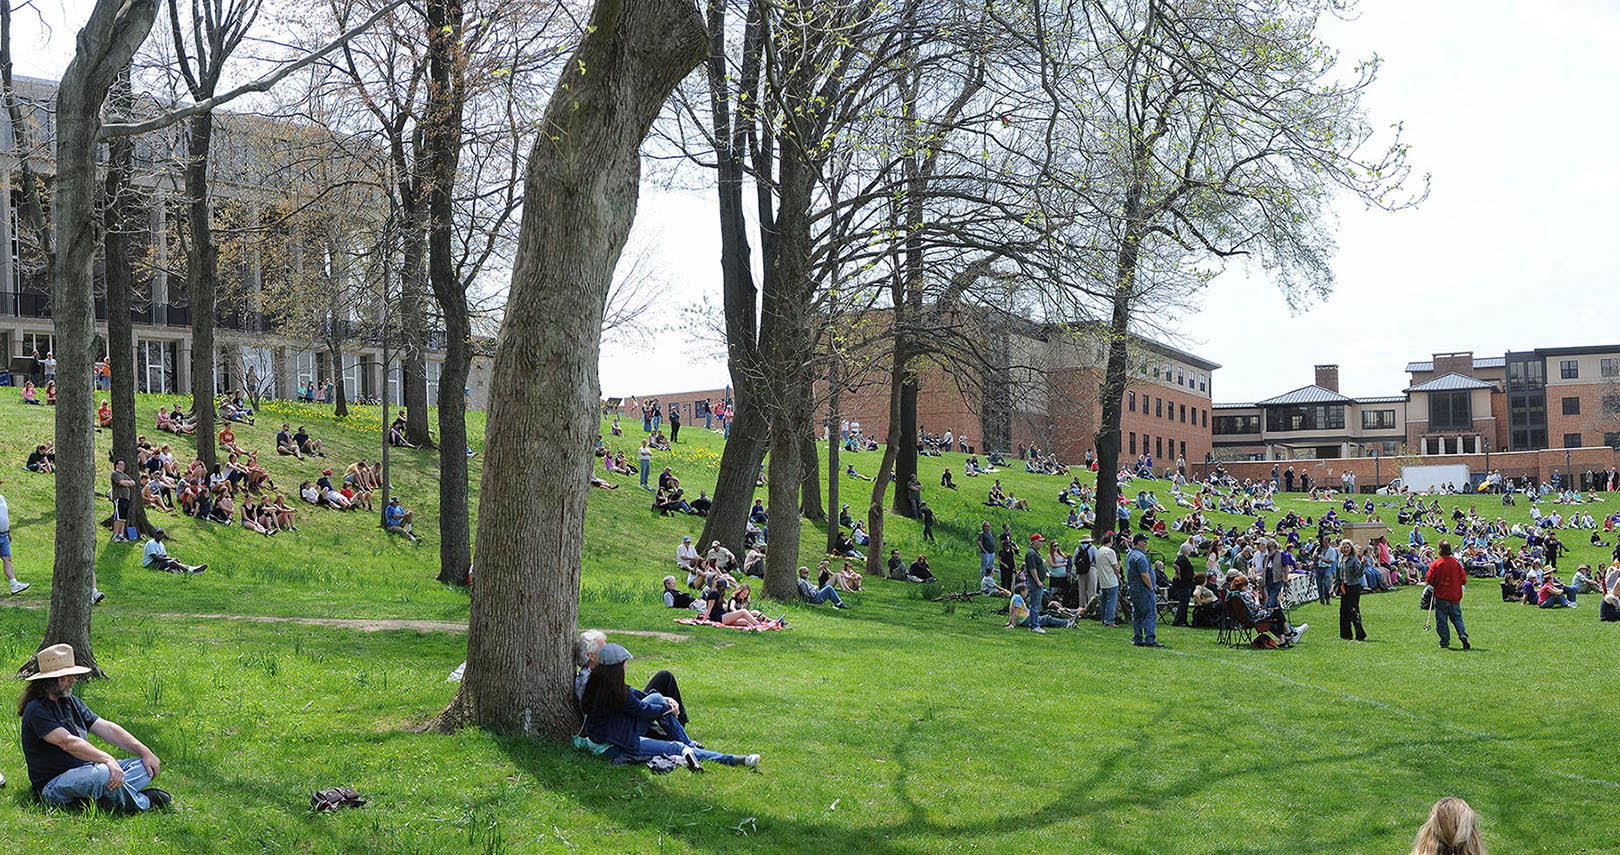 Photo from Kent State's May 4 Commemoration in 2015